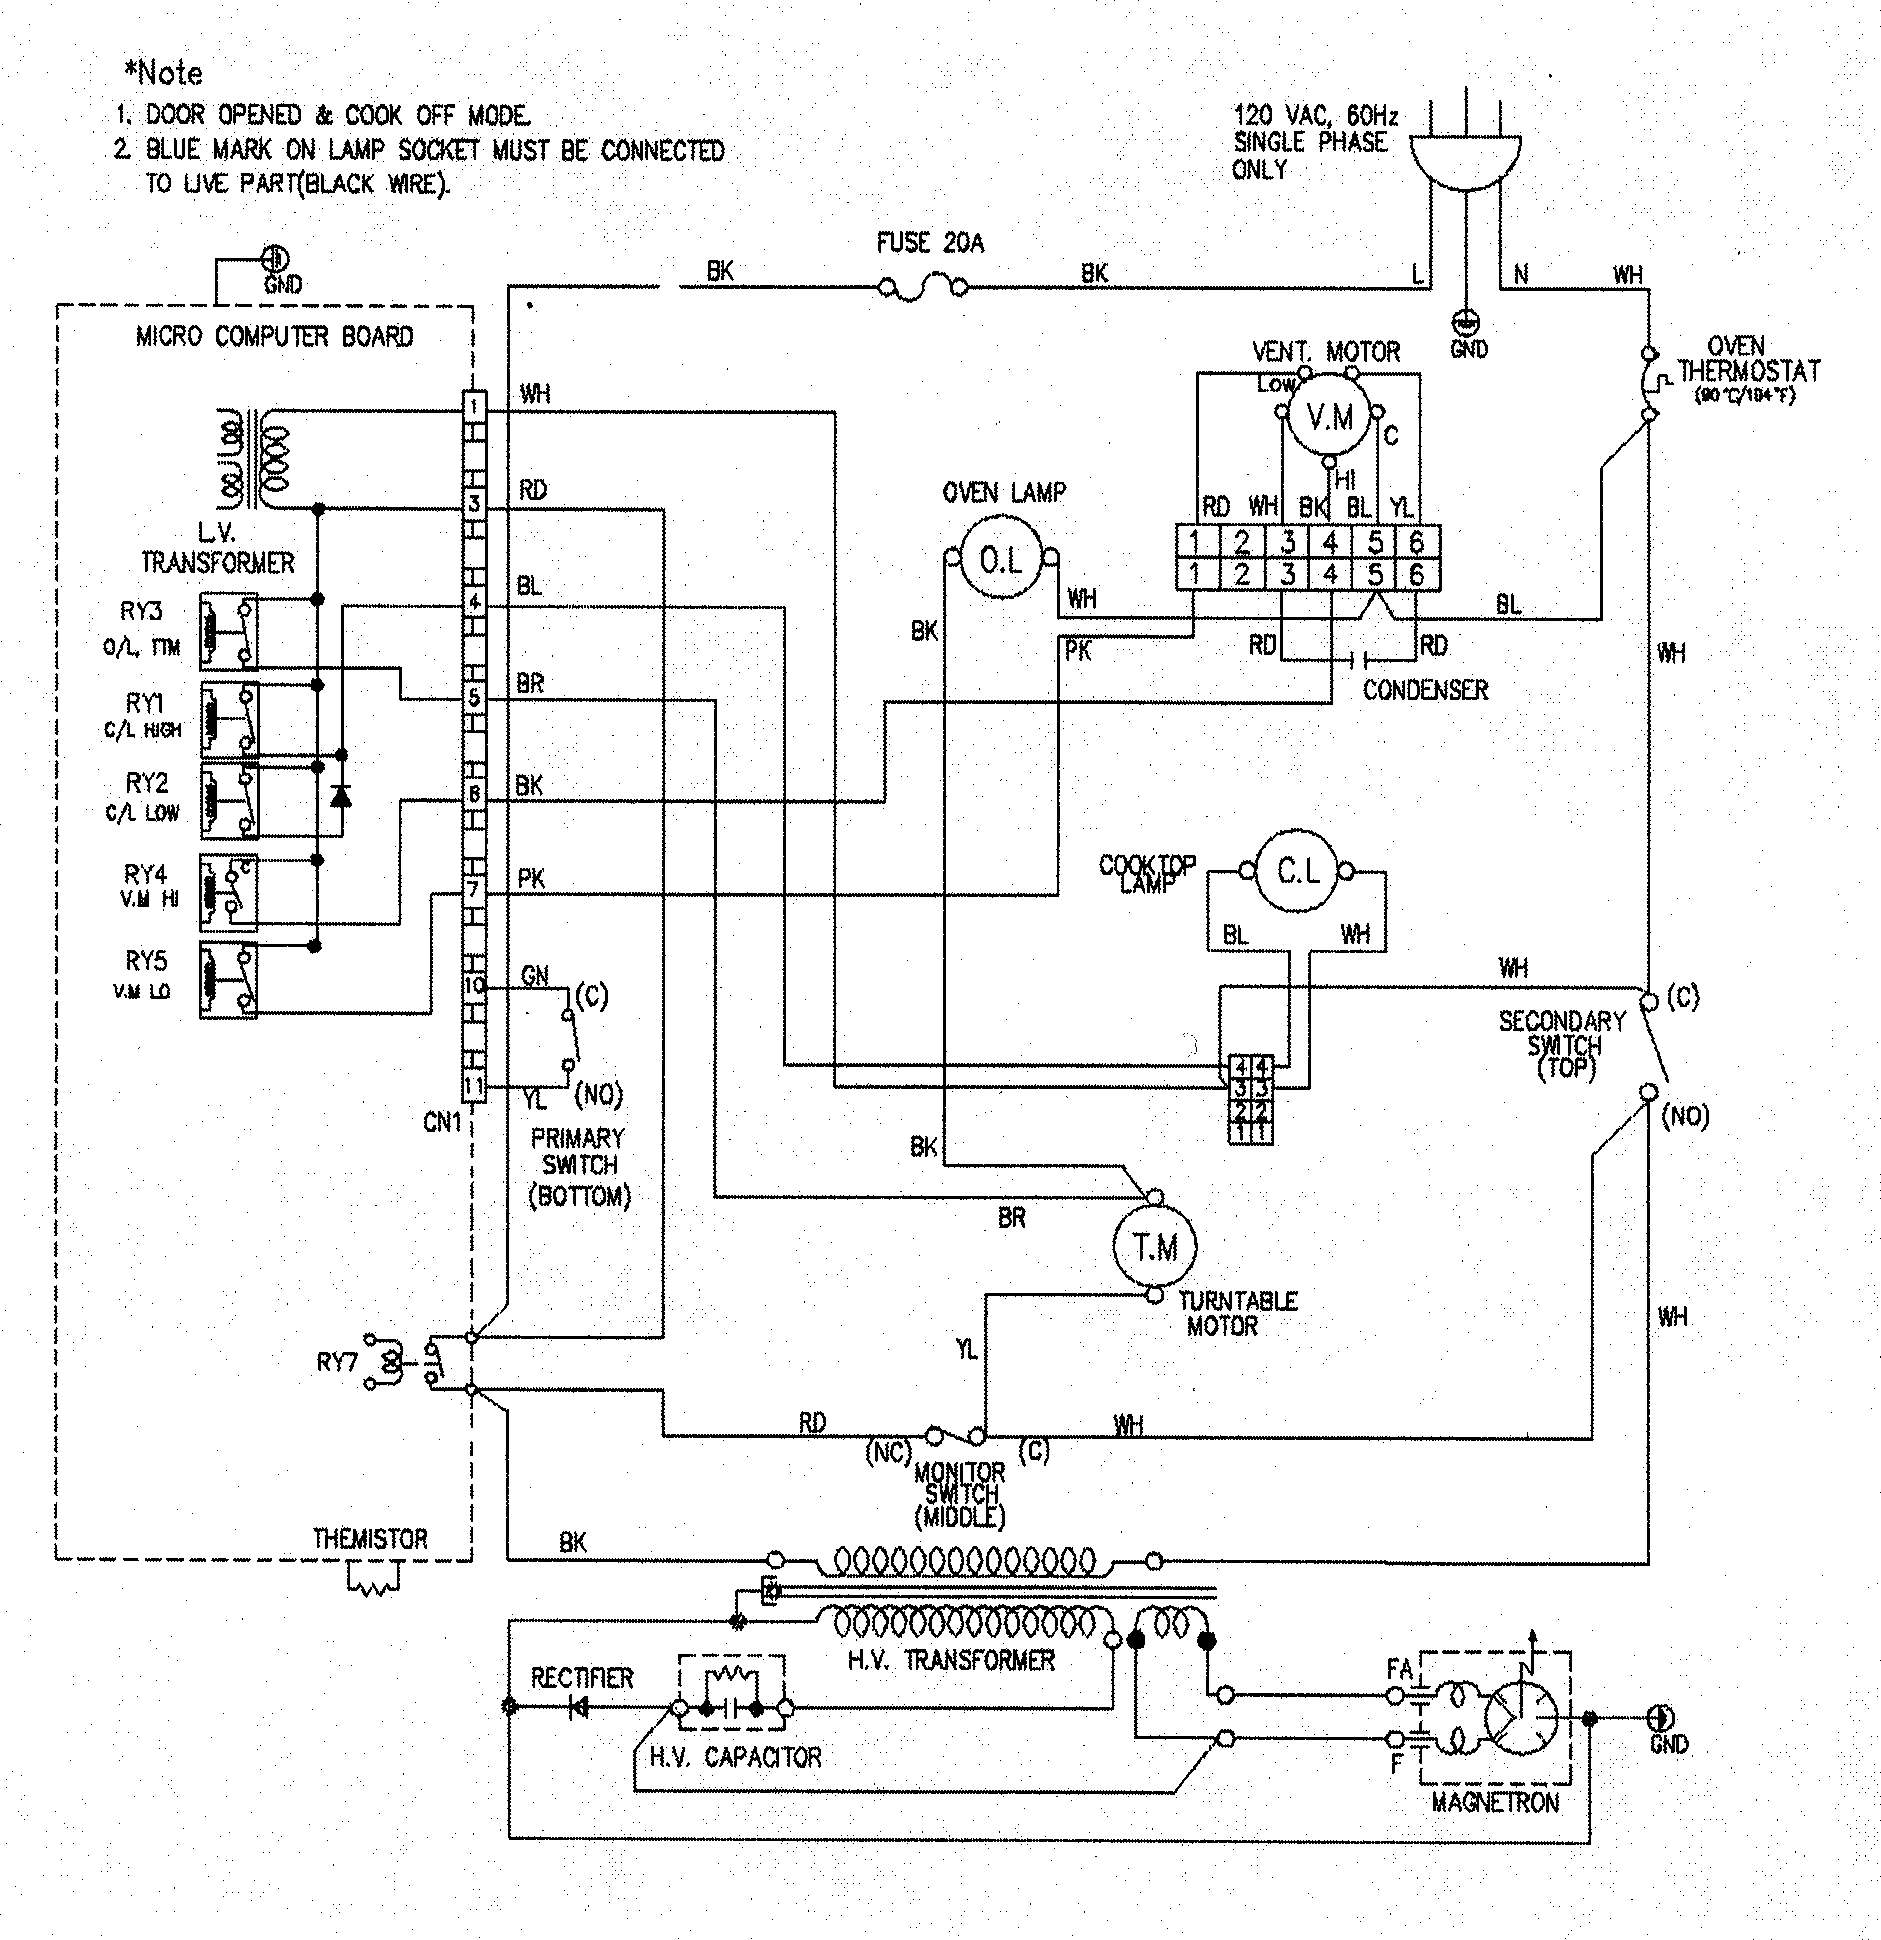 medium resolution of jbp24 ge oven wiring schematic wiring diagrams konsult ge schematic diagrams